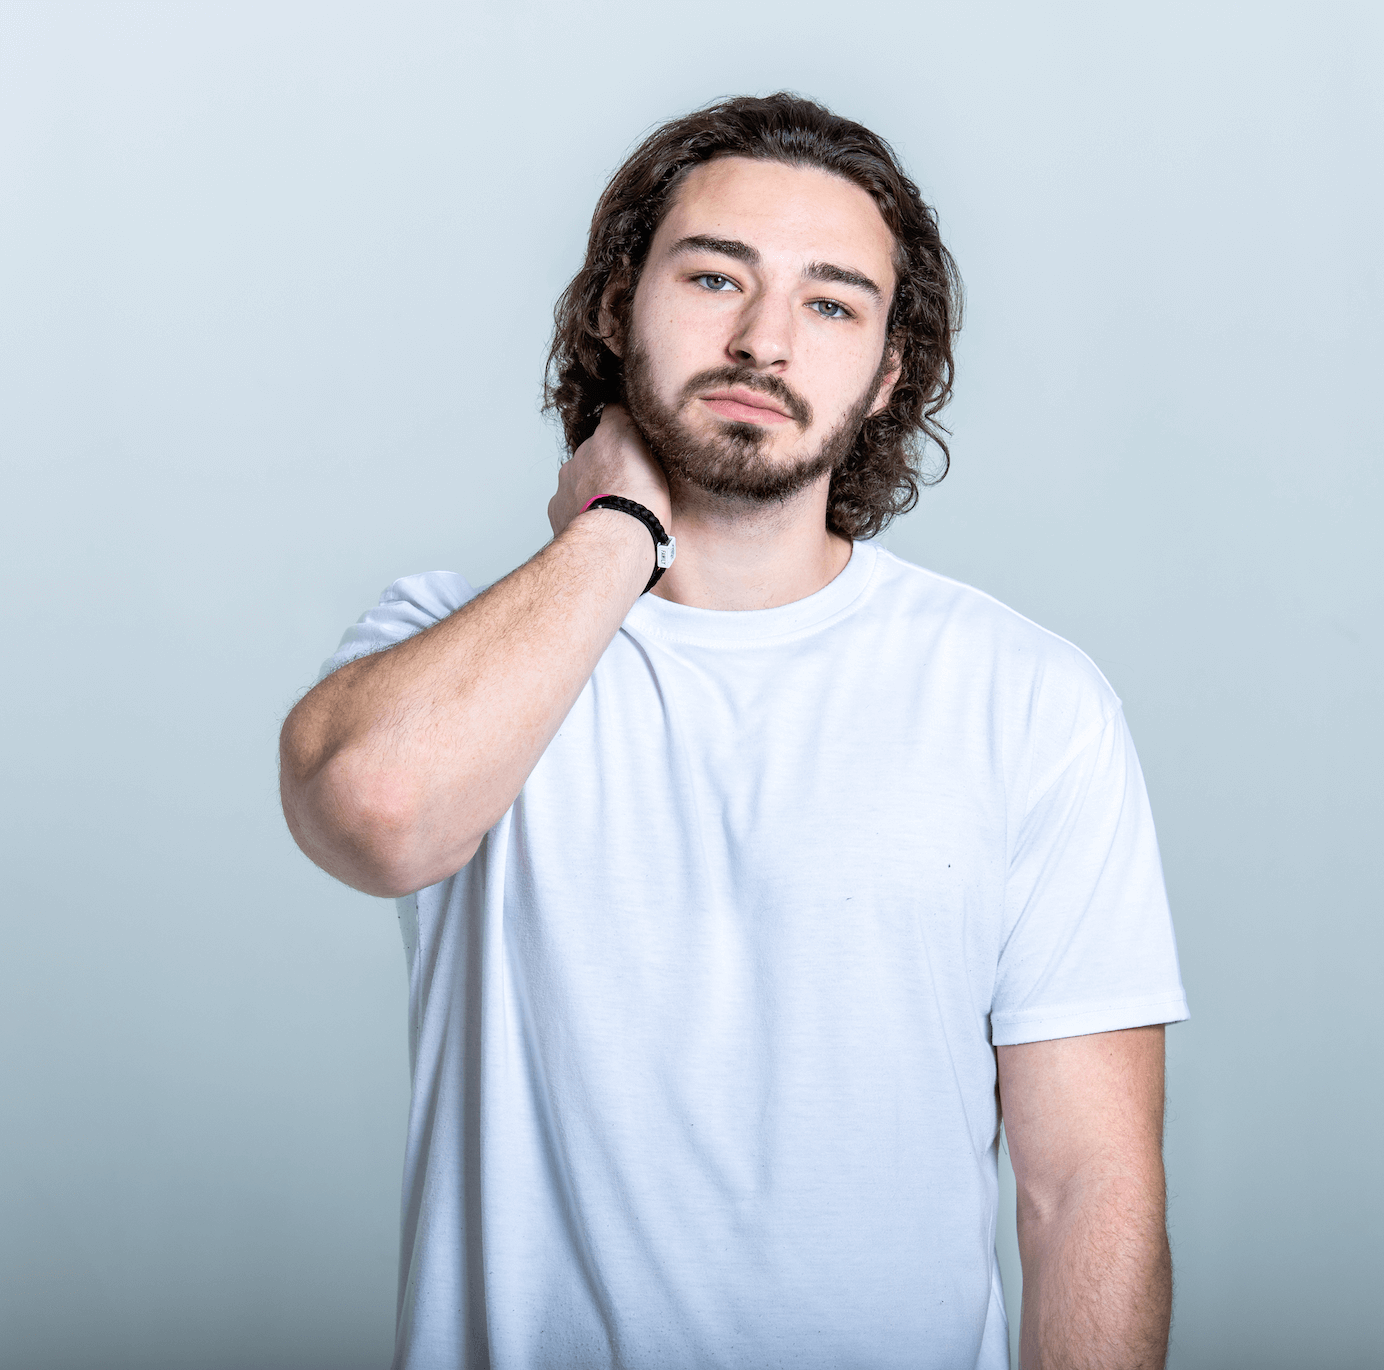 Crankdat makes his first foray into drum & bass in new releaseCrankdat Press